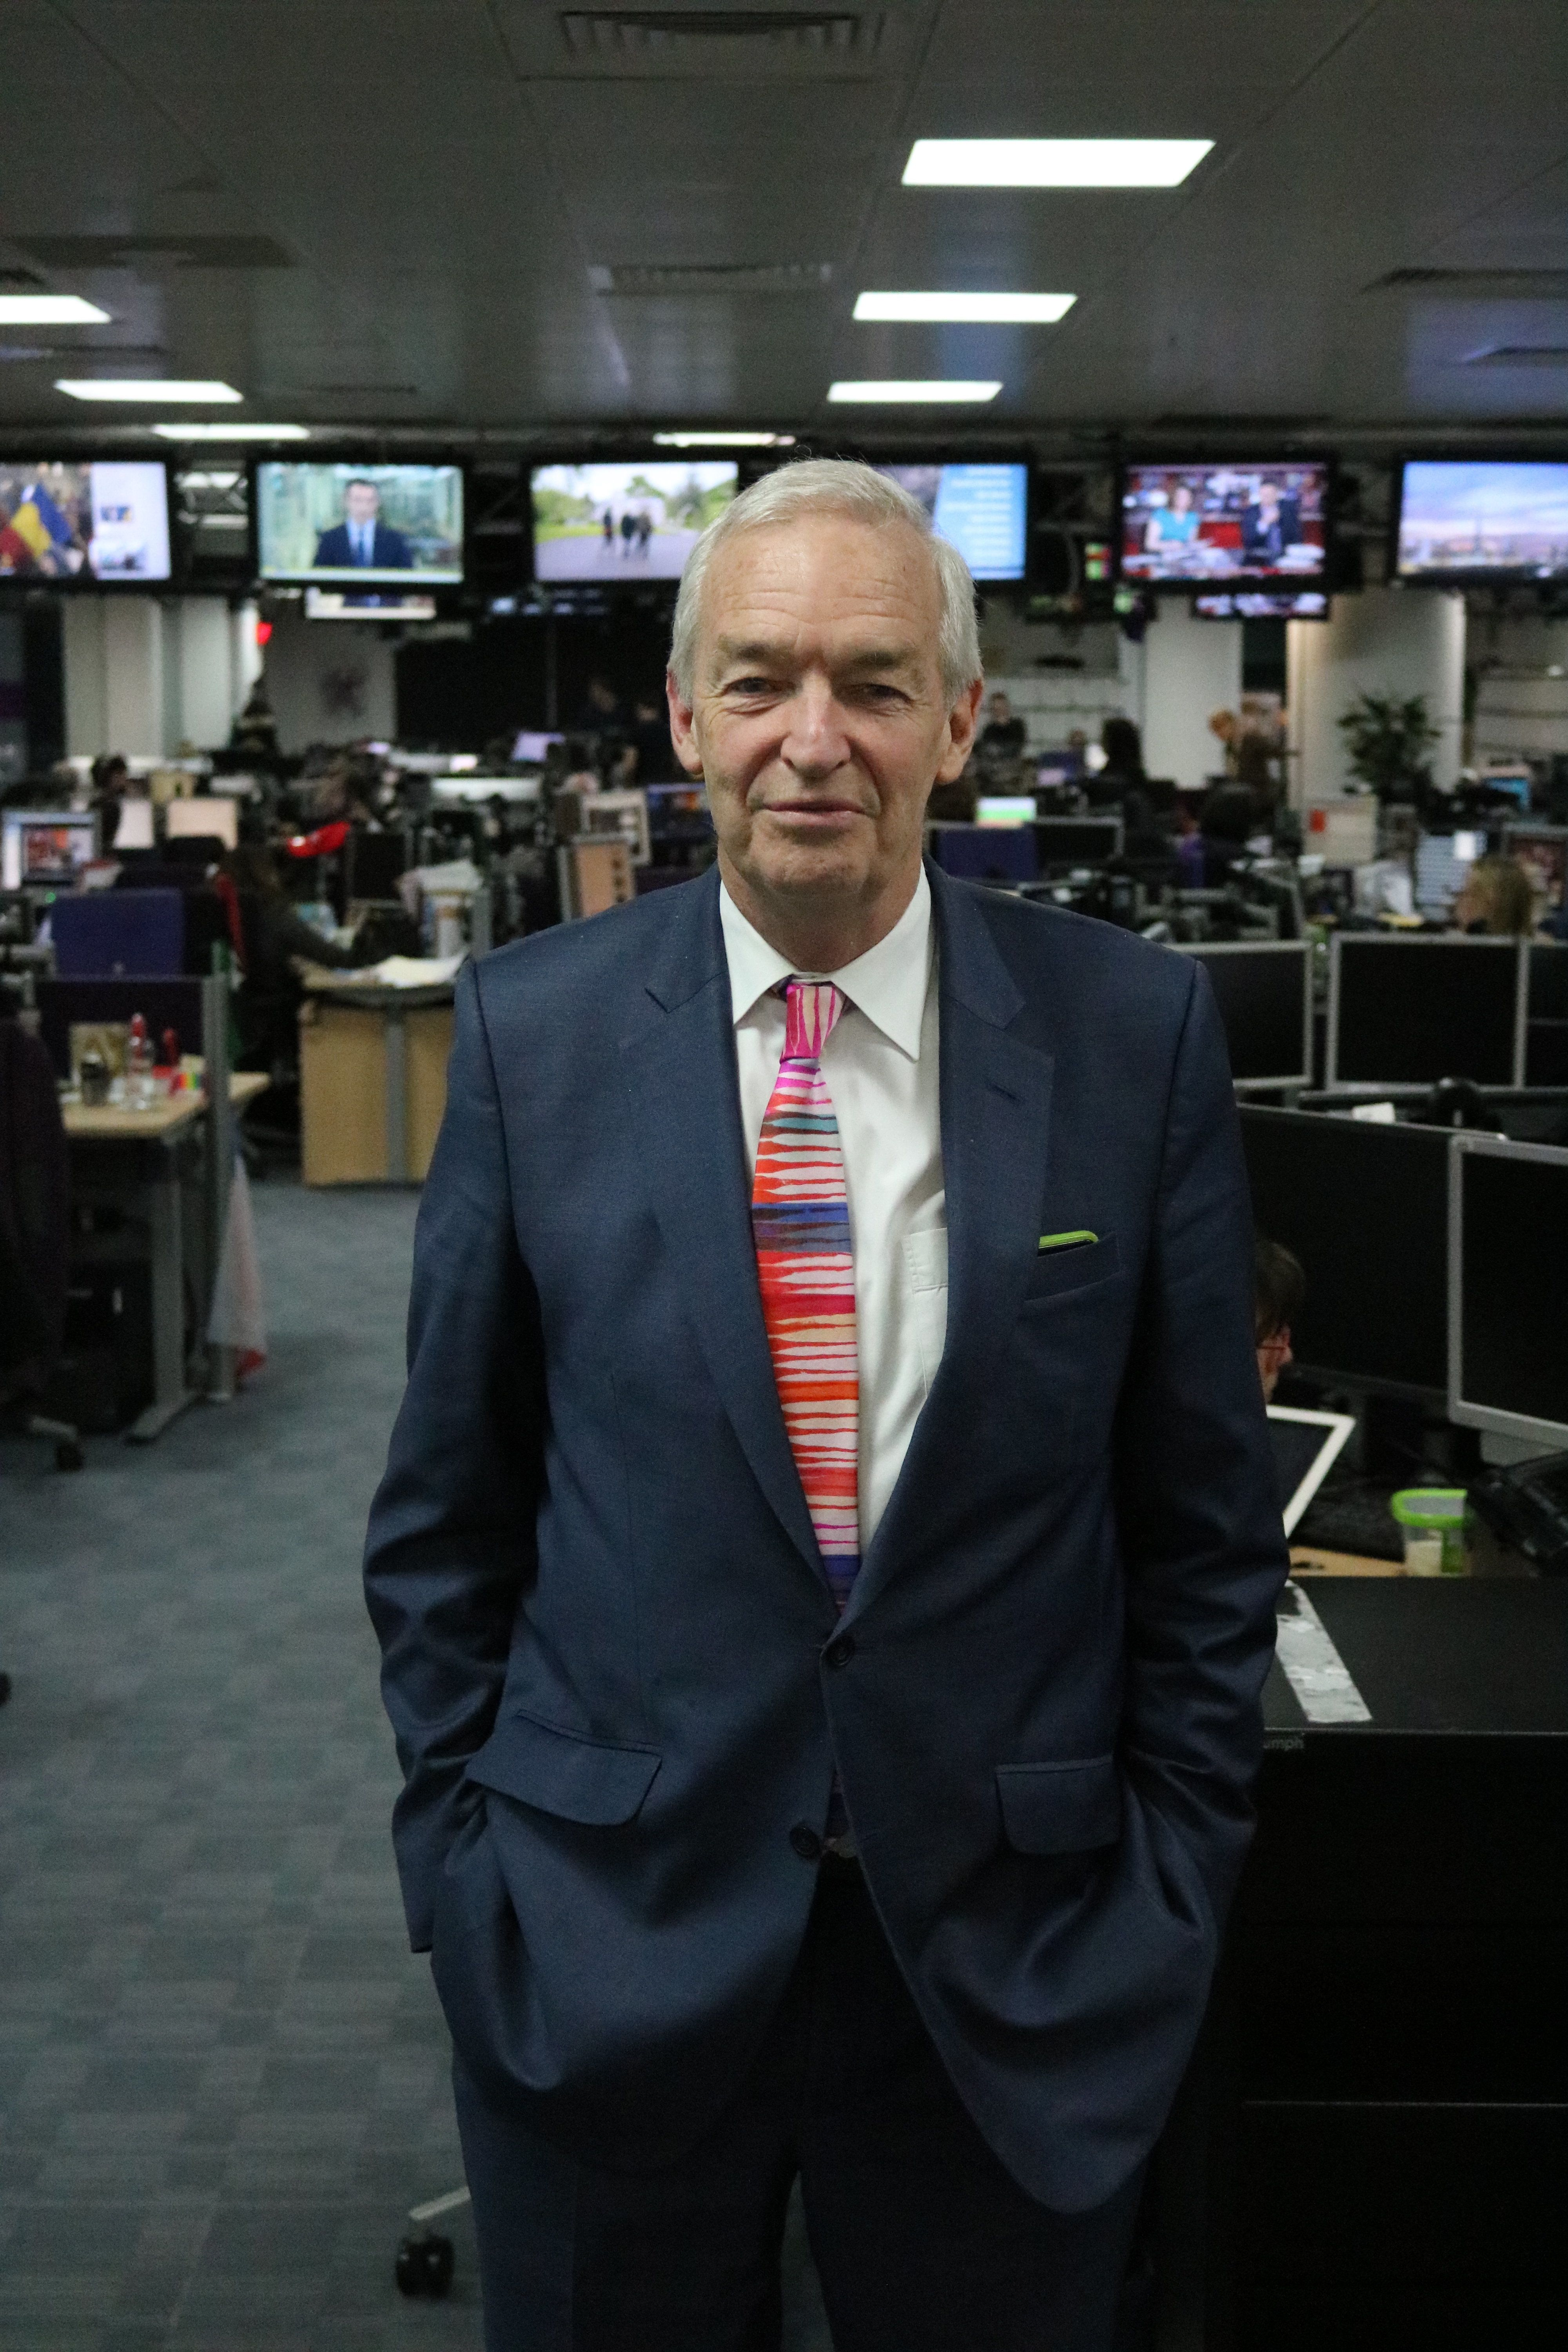 Even Fake News And Trump Can't Stop Jon Snow Thinking Journalism's In A Golden